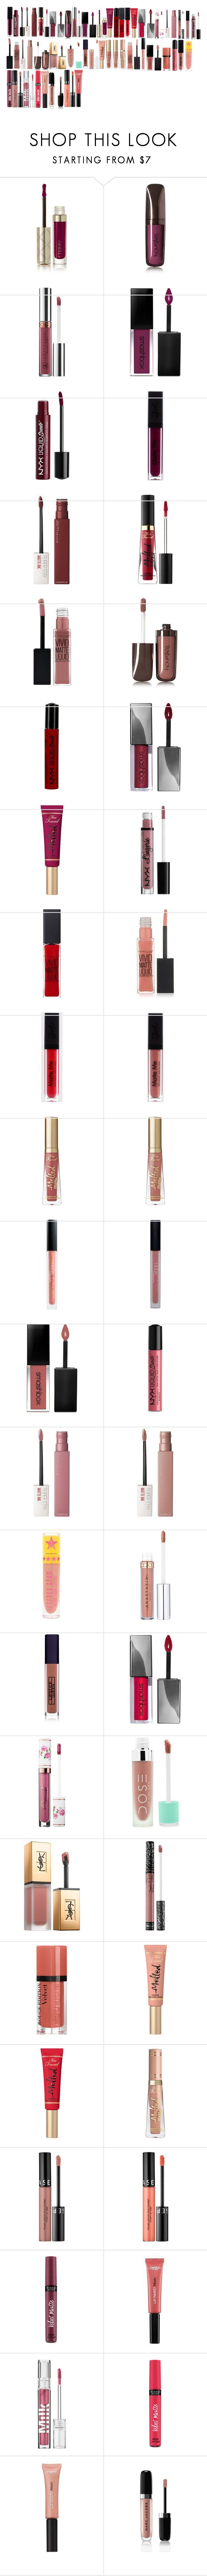 """""""liquid lipsticks"""" by azra-99 on Polyvore featuring beauty, By Terry, Hourglass Cosmetics, Anastasia Beverly Hills, Smashbox, Charlotte Russe, Maybelline, Too Faced Cosmetics, NYX and Huda Beauty"""